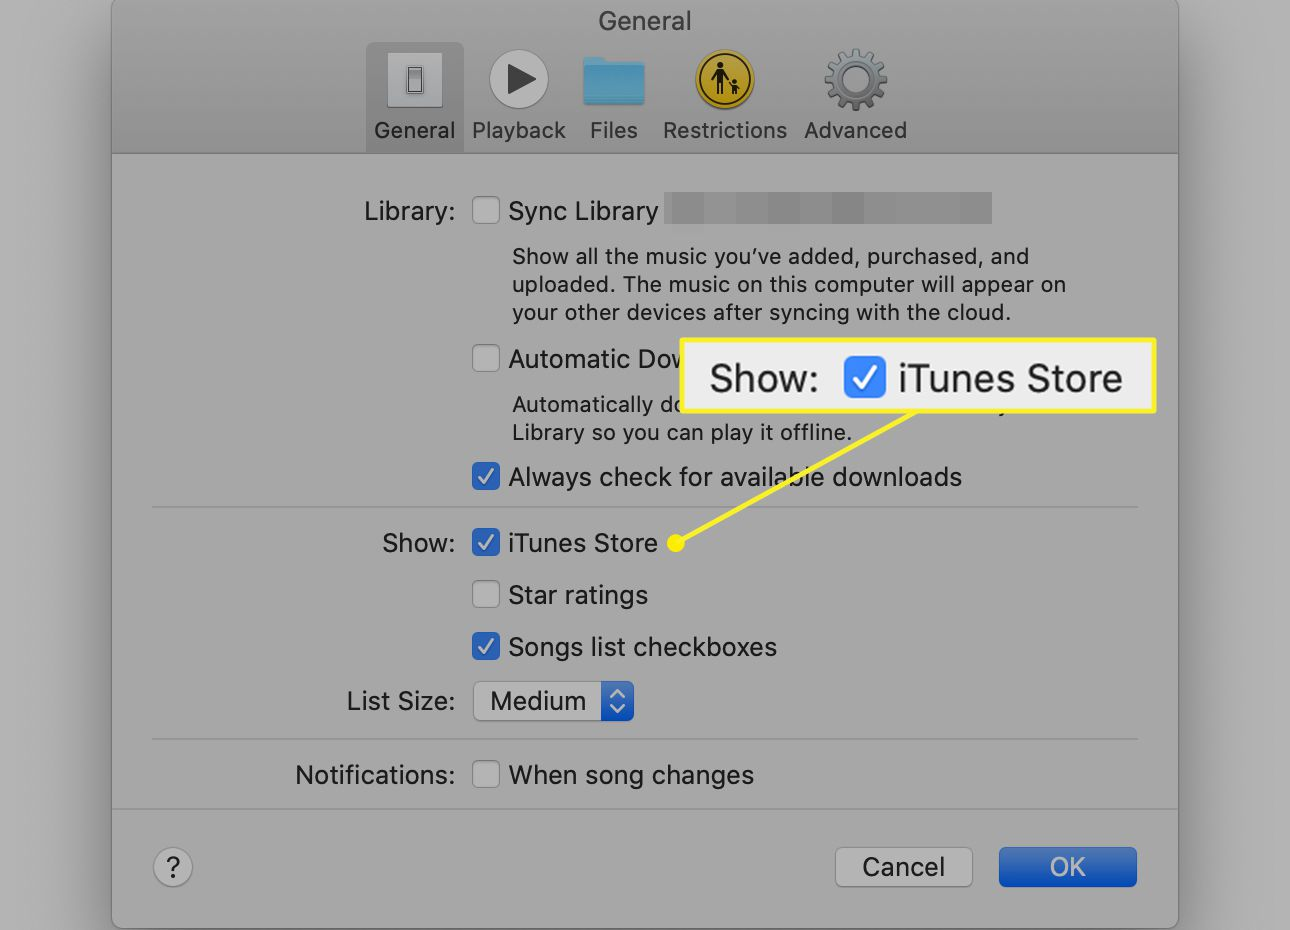 Music General preferences with Show iTunes Store checked